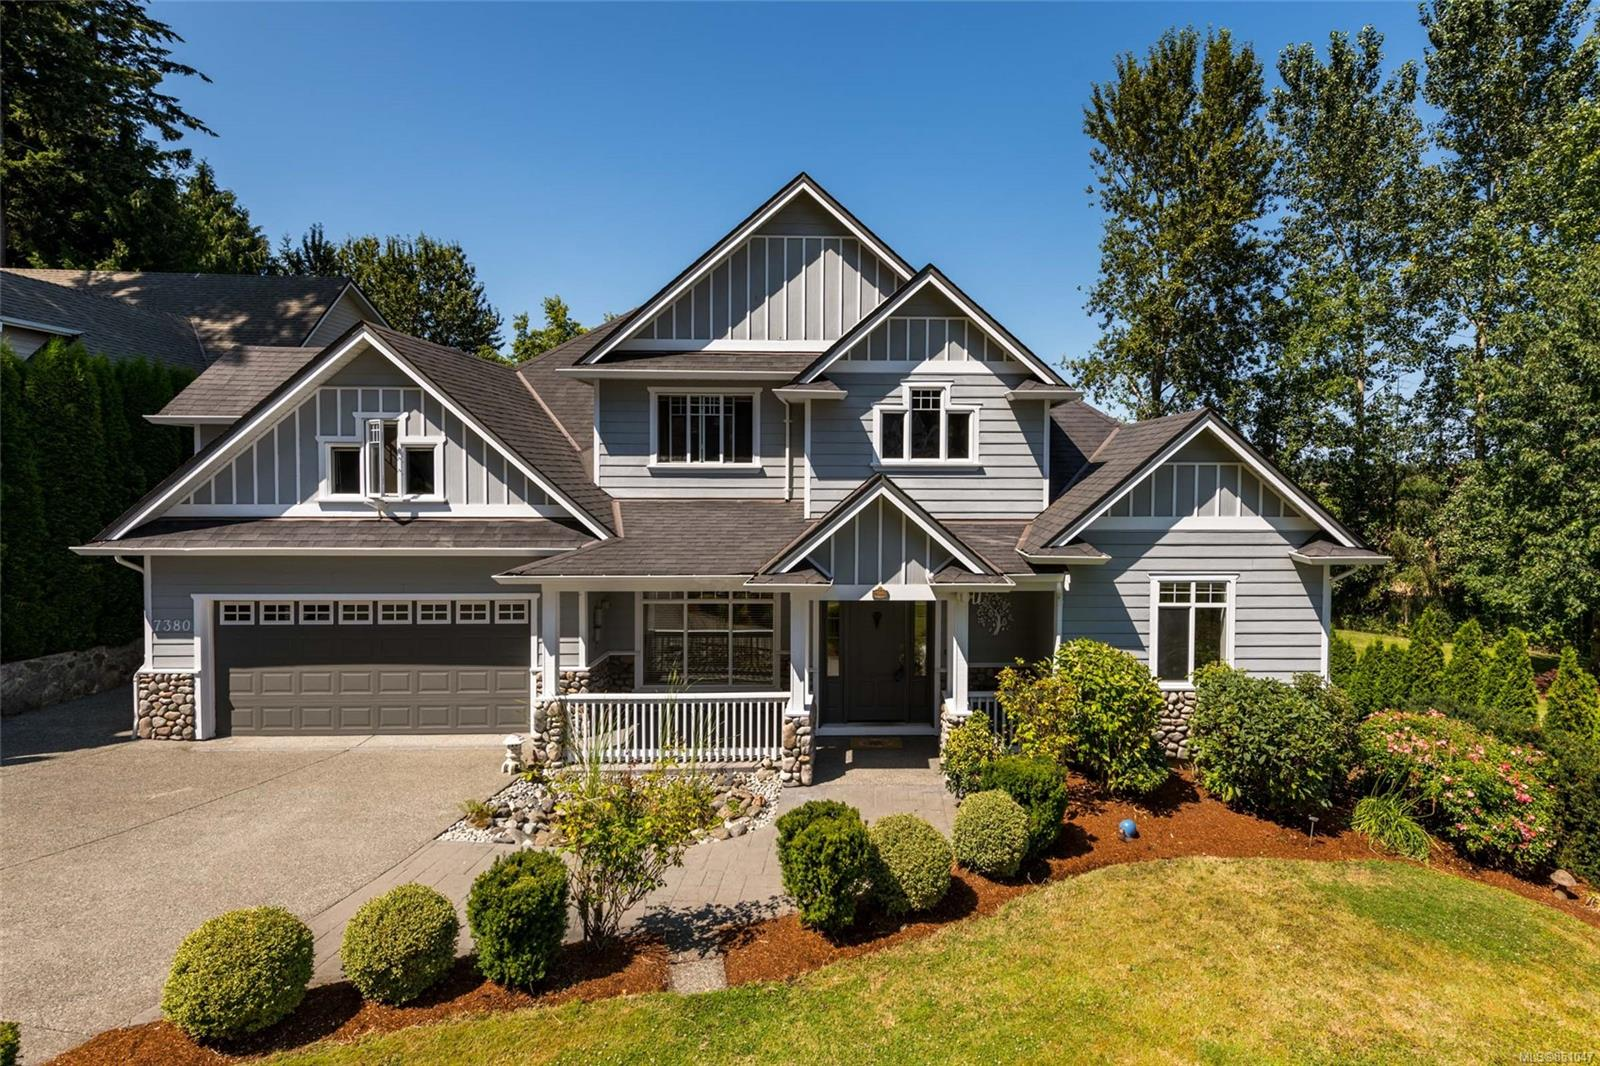 FEATURED LISTING: 7380 Ridgedown Crt